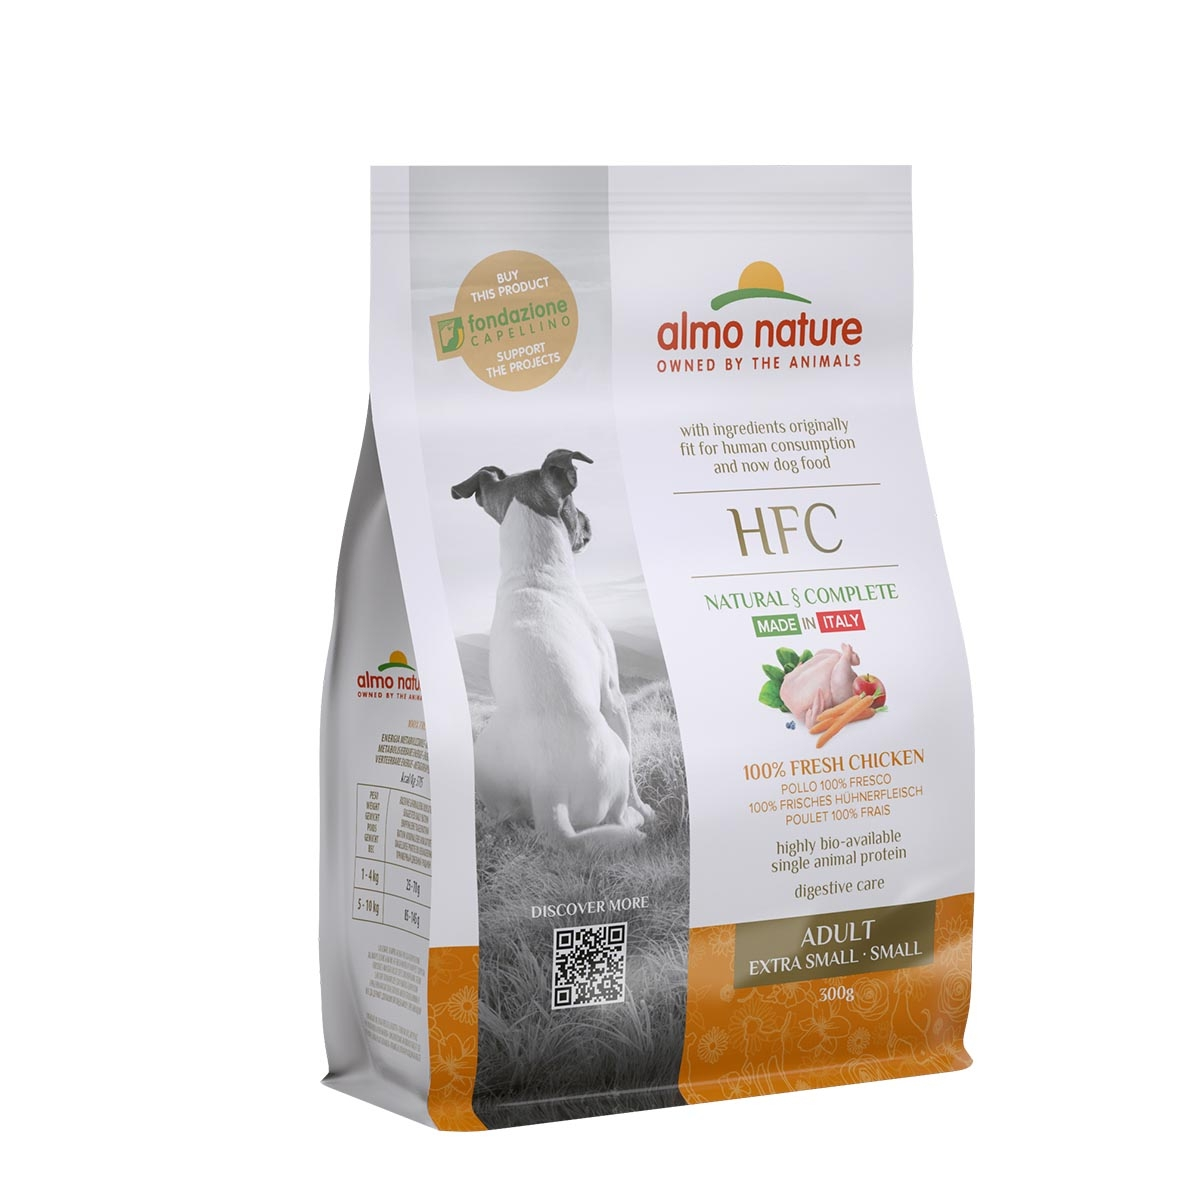 DOG DRY HFC ADULT SMALL POLLO 300G